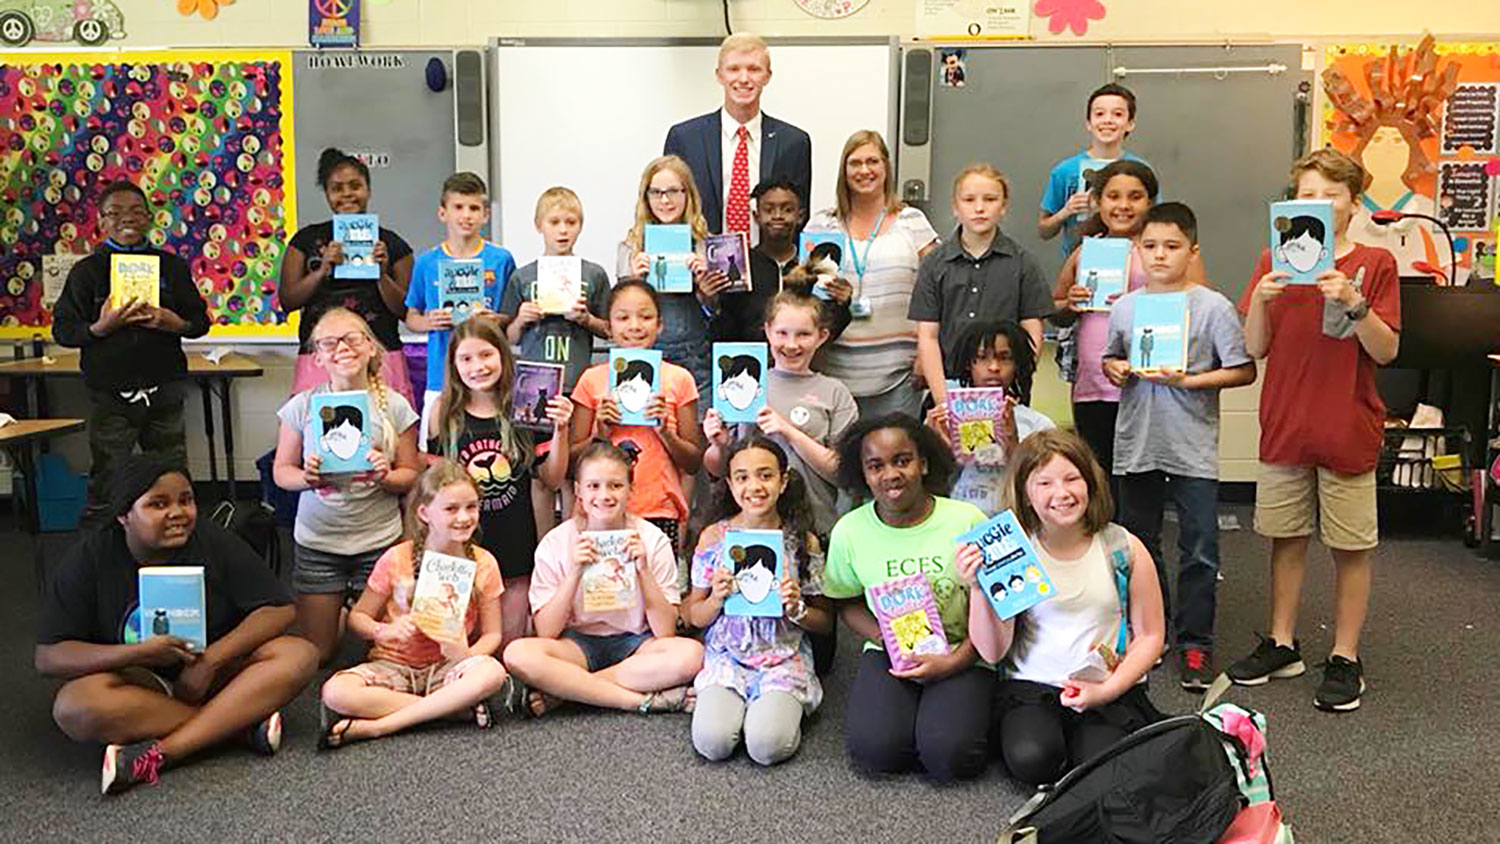 Class of elementary school students holding up books